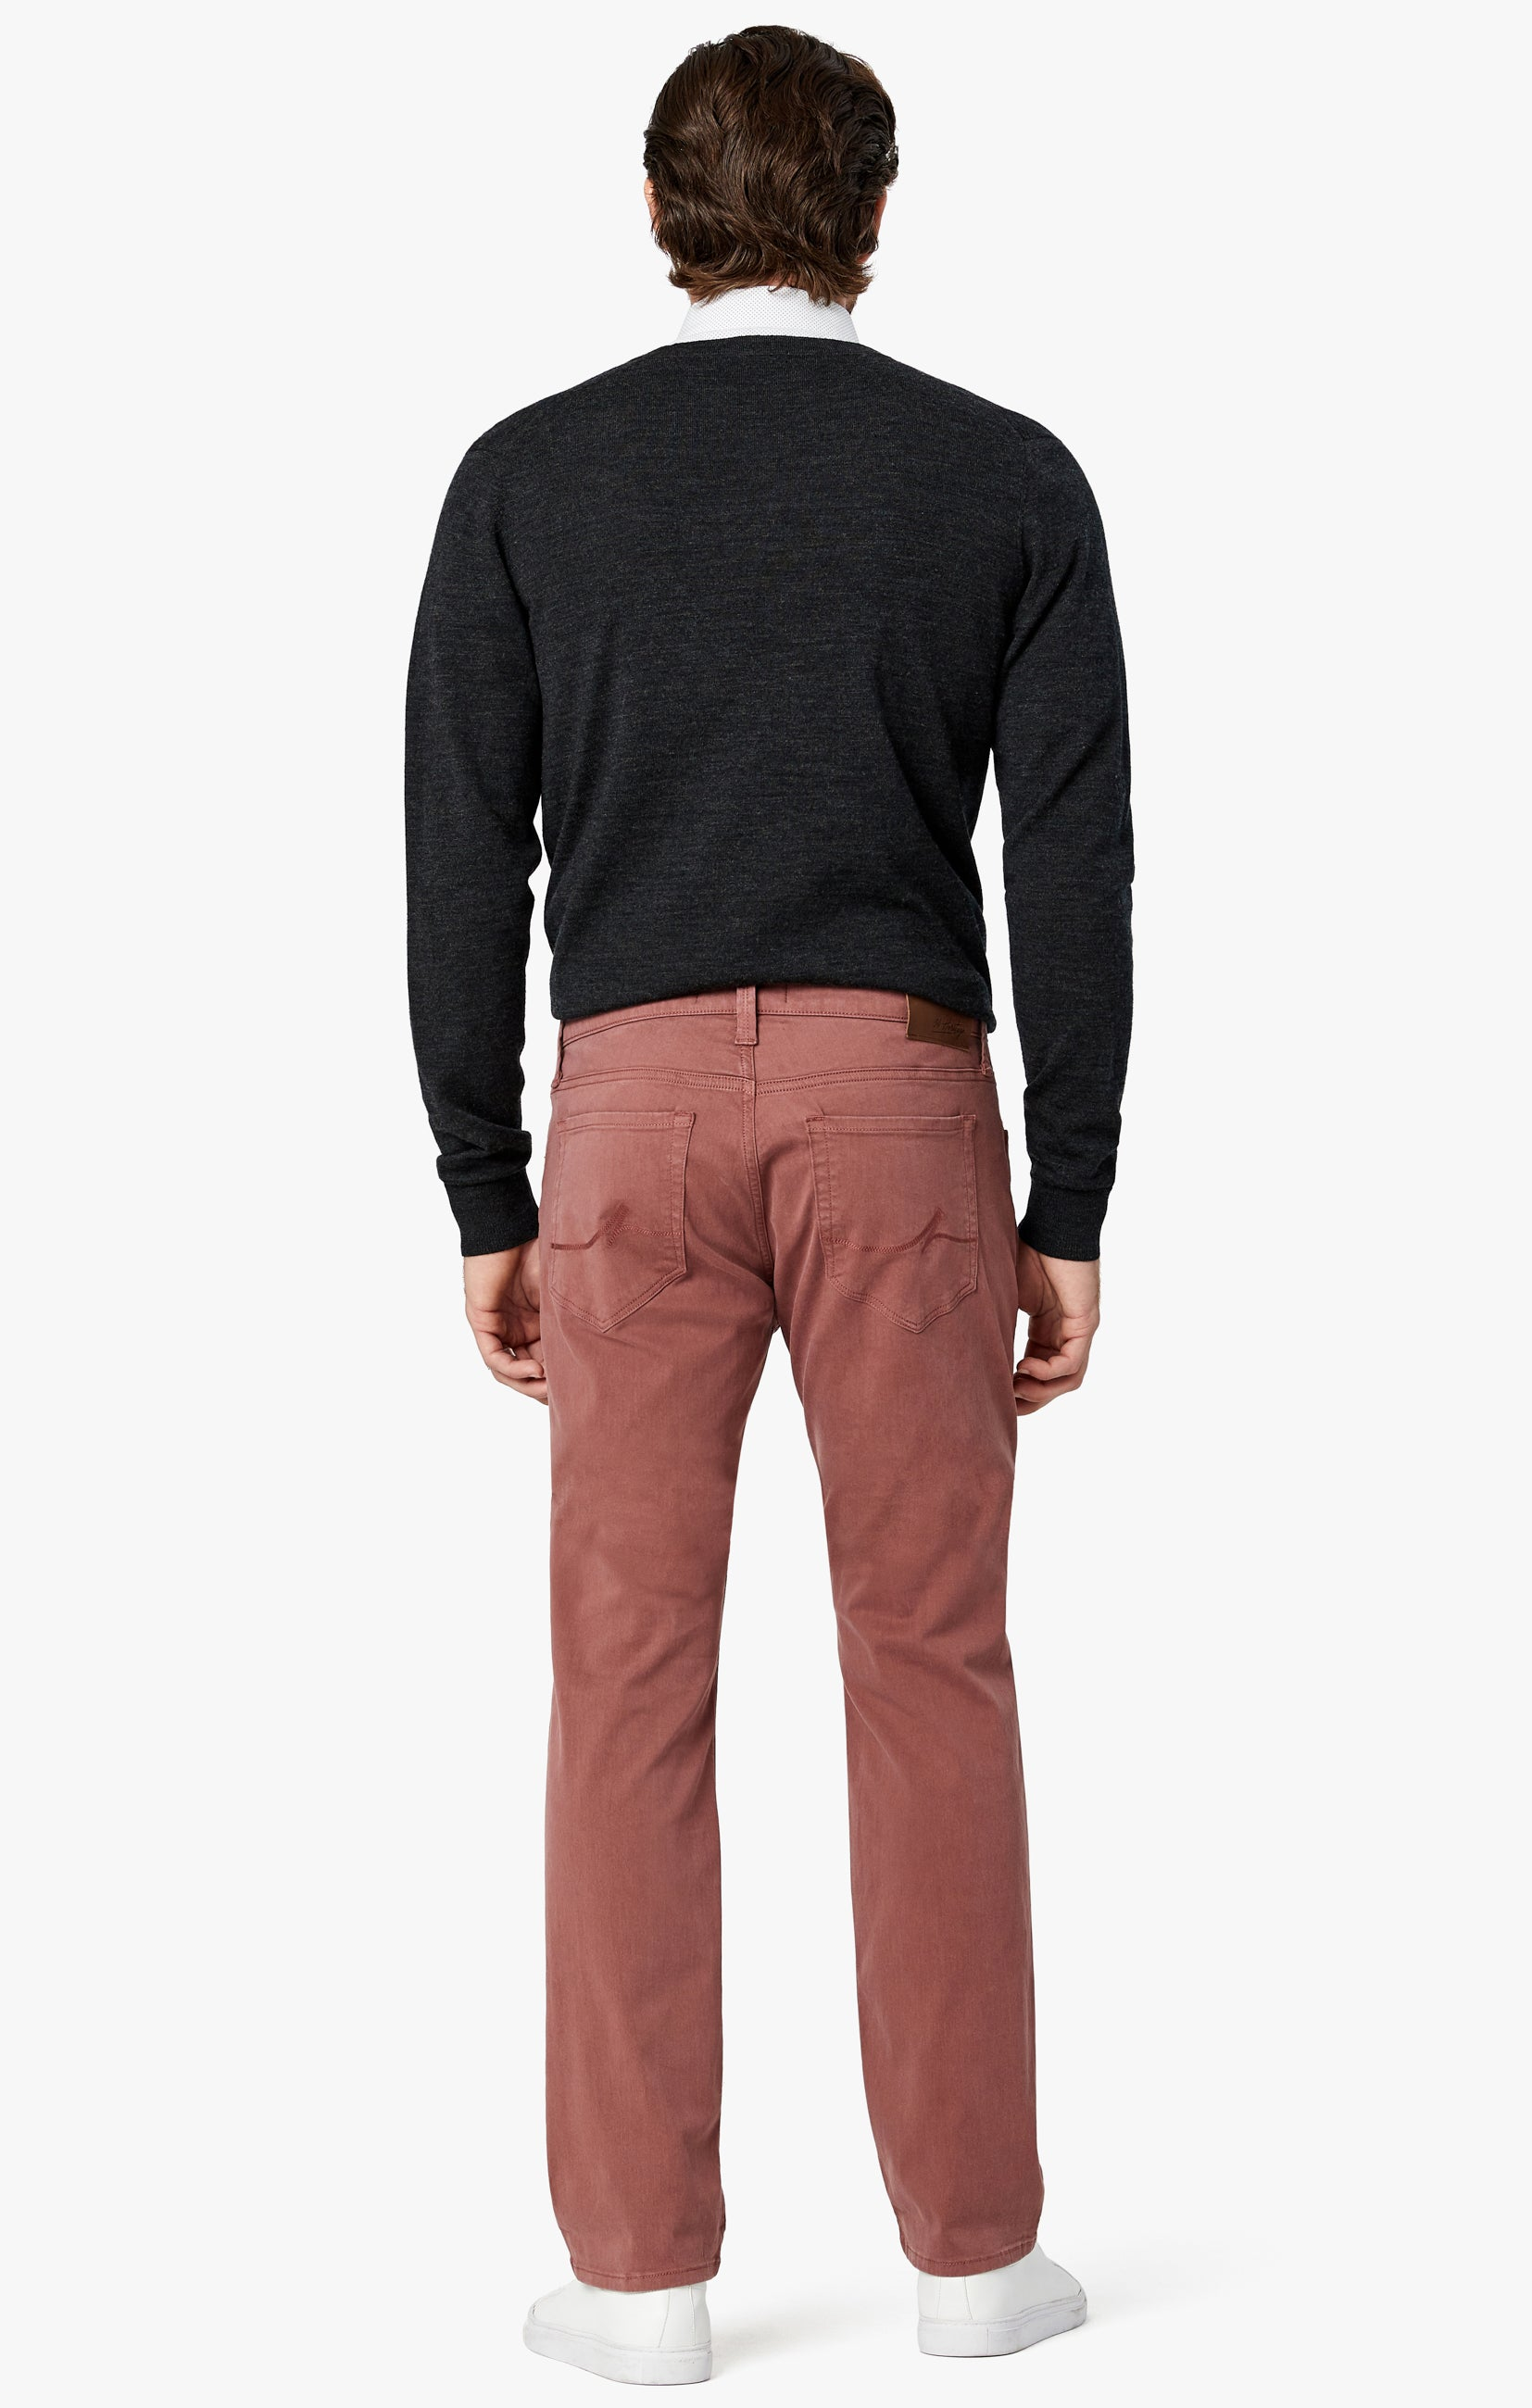 Courage Straight Leg Pants in Berry Twill Image 4